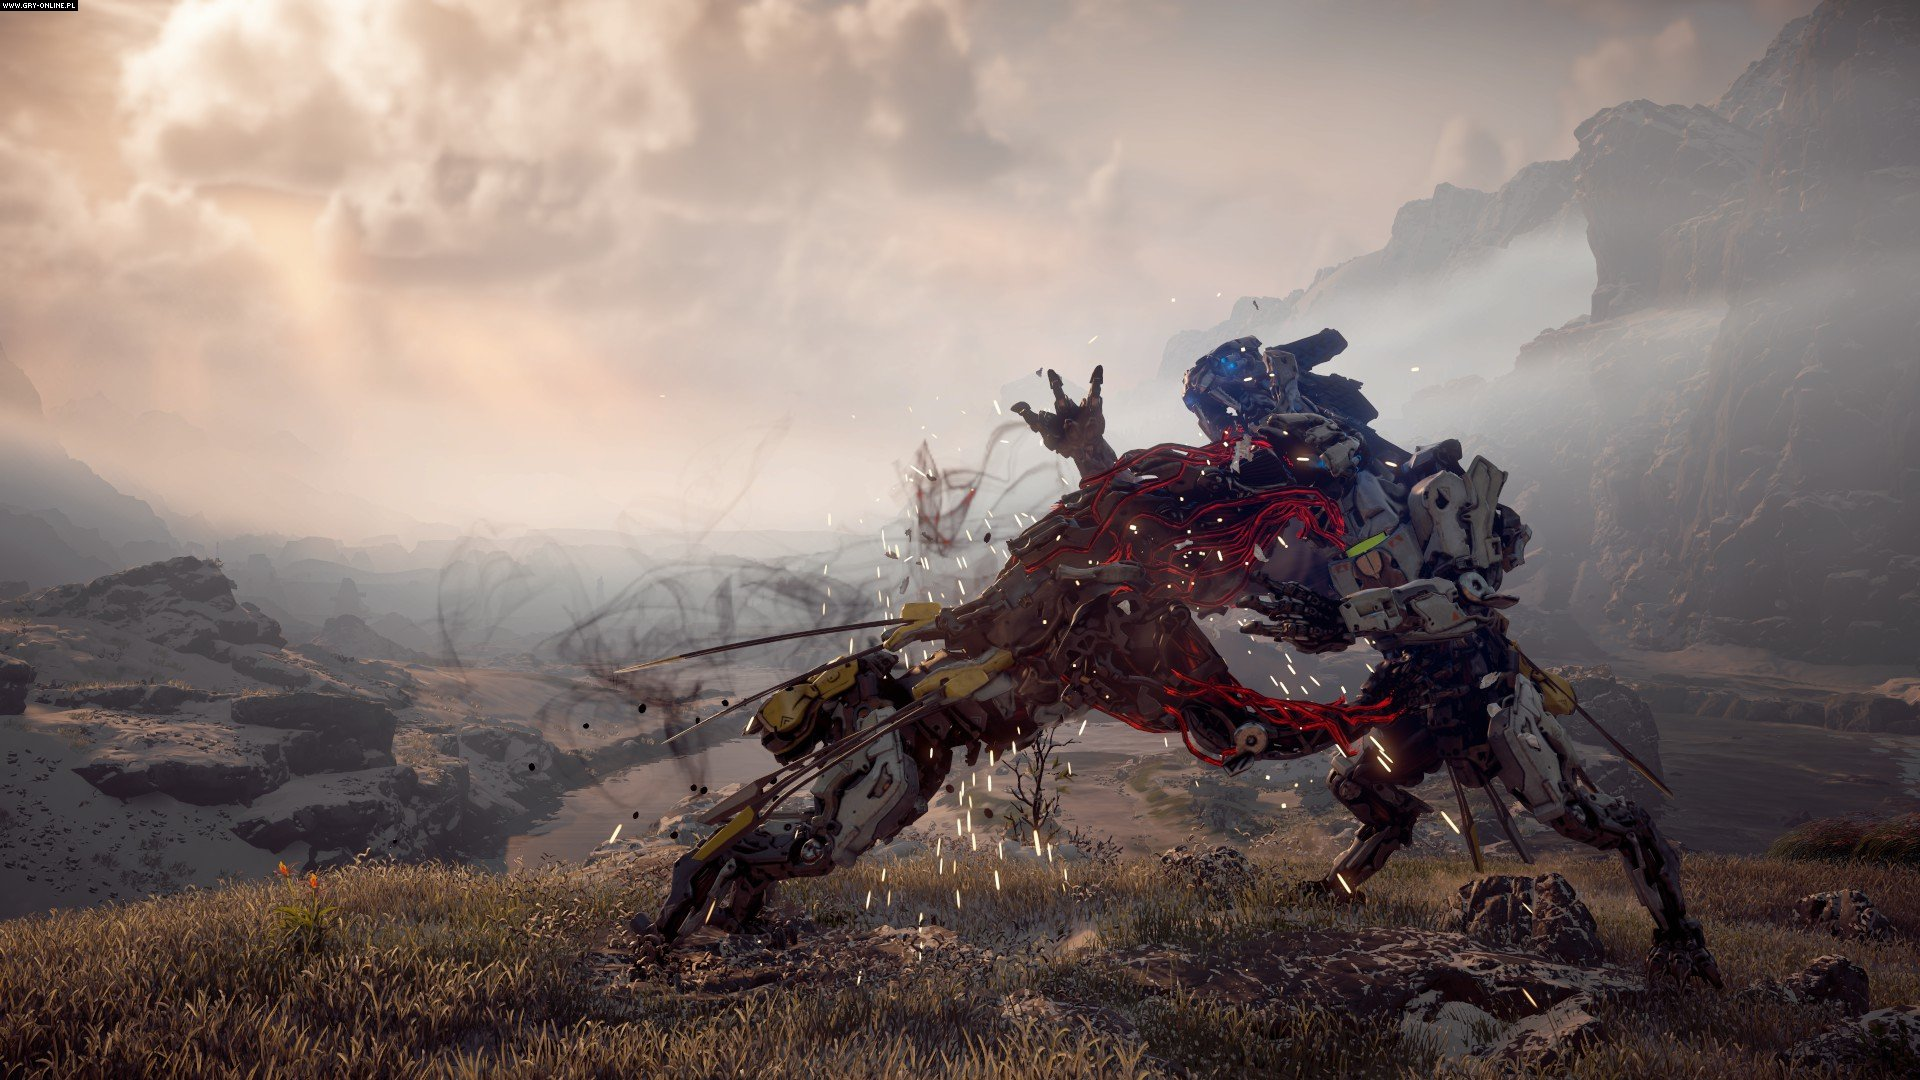 Horizon Zero Dawn PS4 Games Image 15/54, Guerrilla Games, Sony Interactive Entertainment